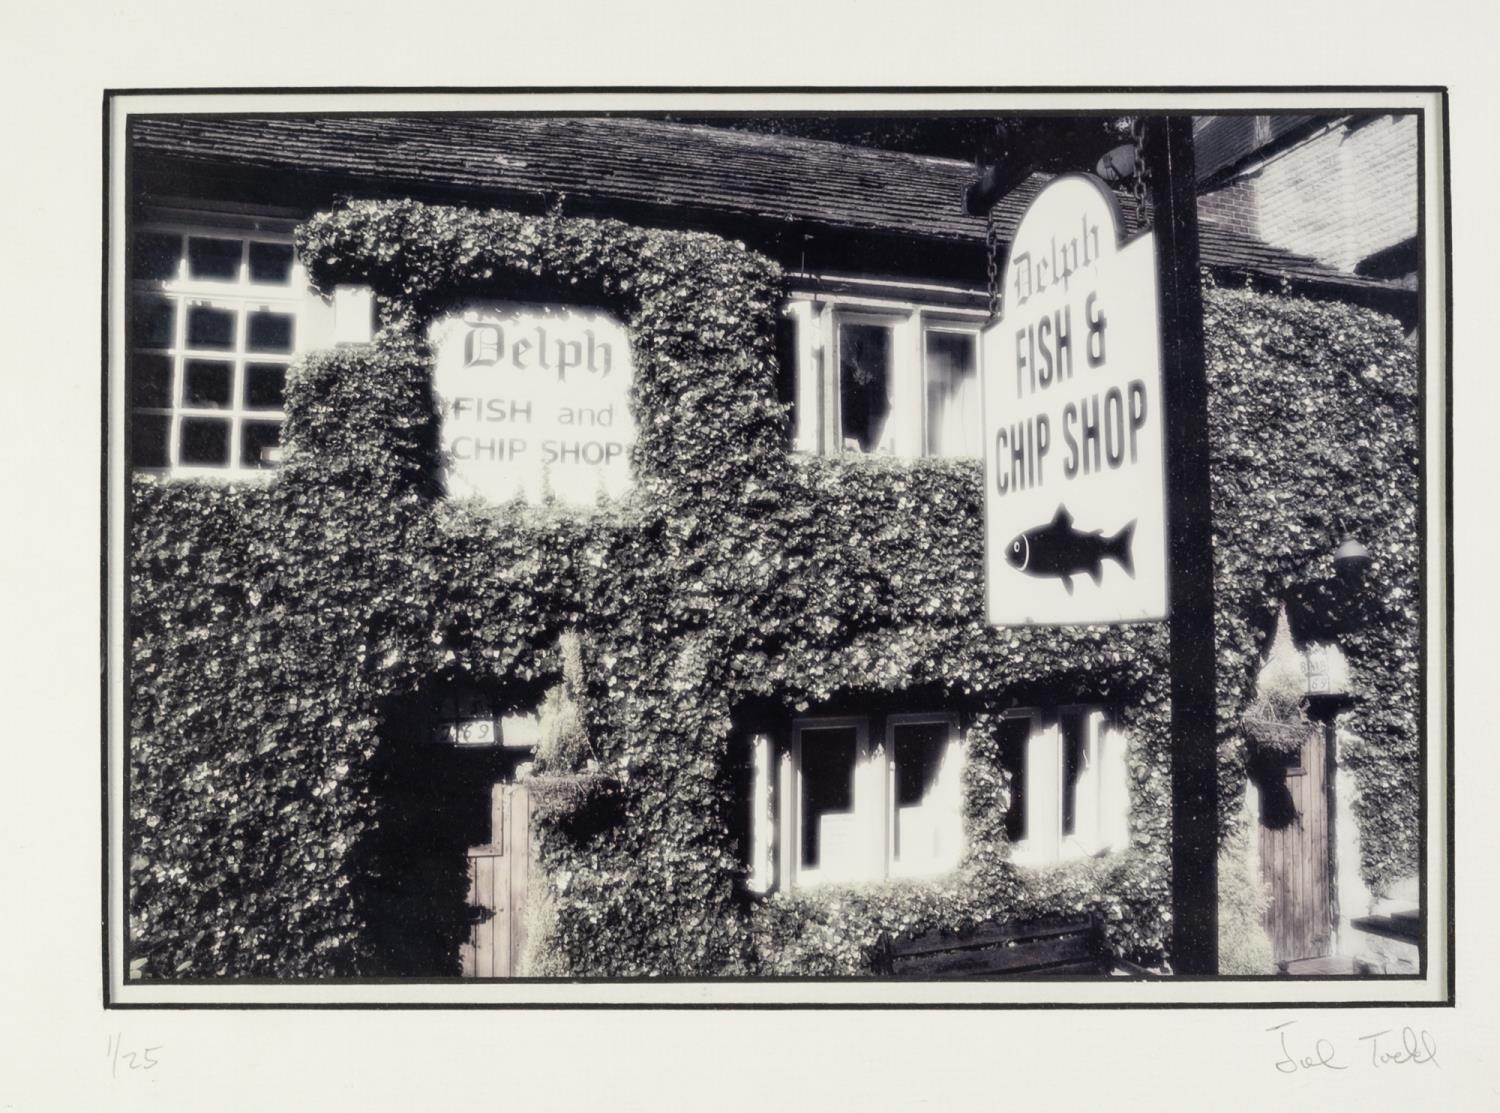 JOHN TODD TWO ARTIST SIGNED LIMITED EDITION PHOTOGRAPHIC PRINTS Delph Fish & Chip Shop, (1/25),